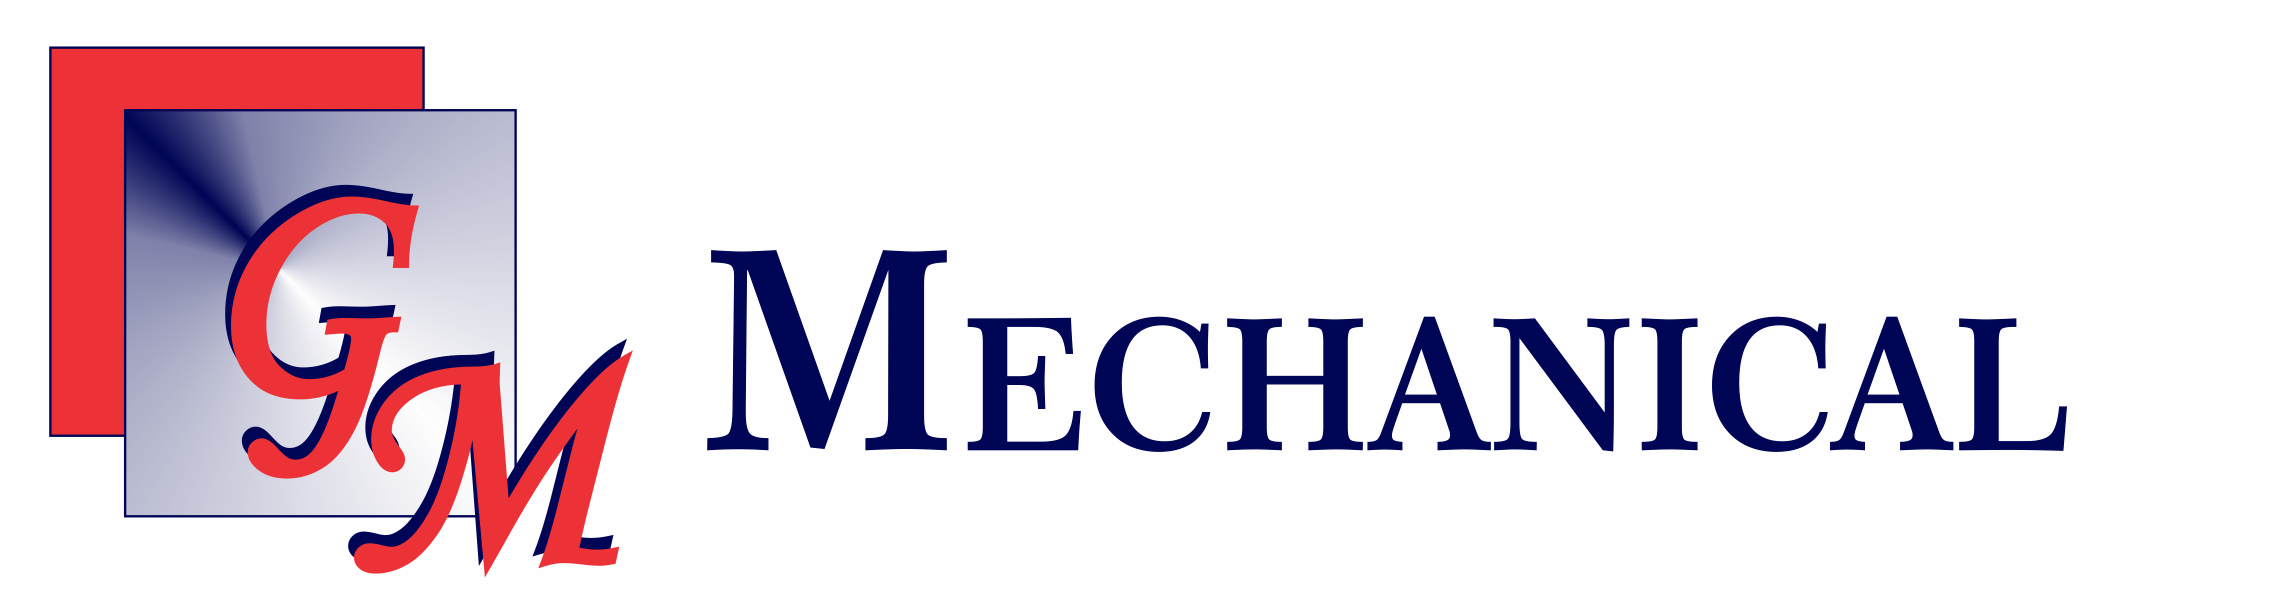 GMMechanical Logo (PNG).png